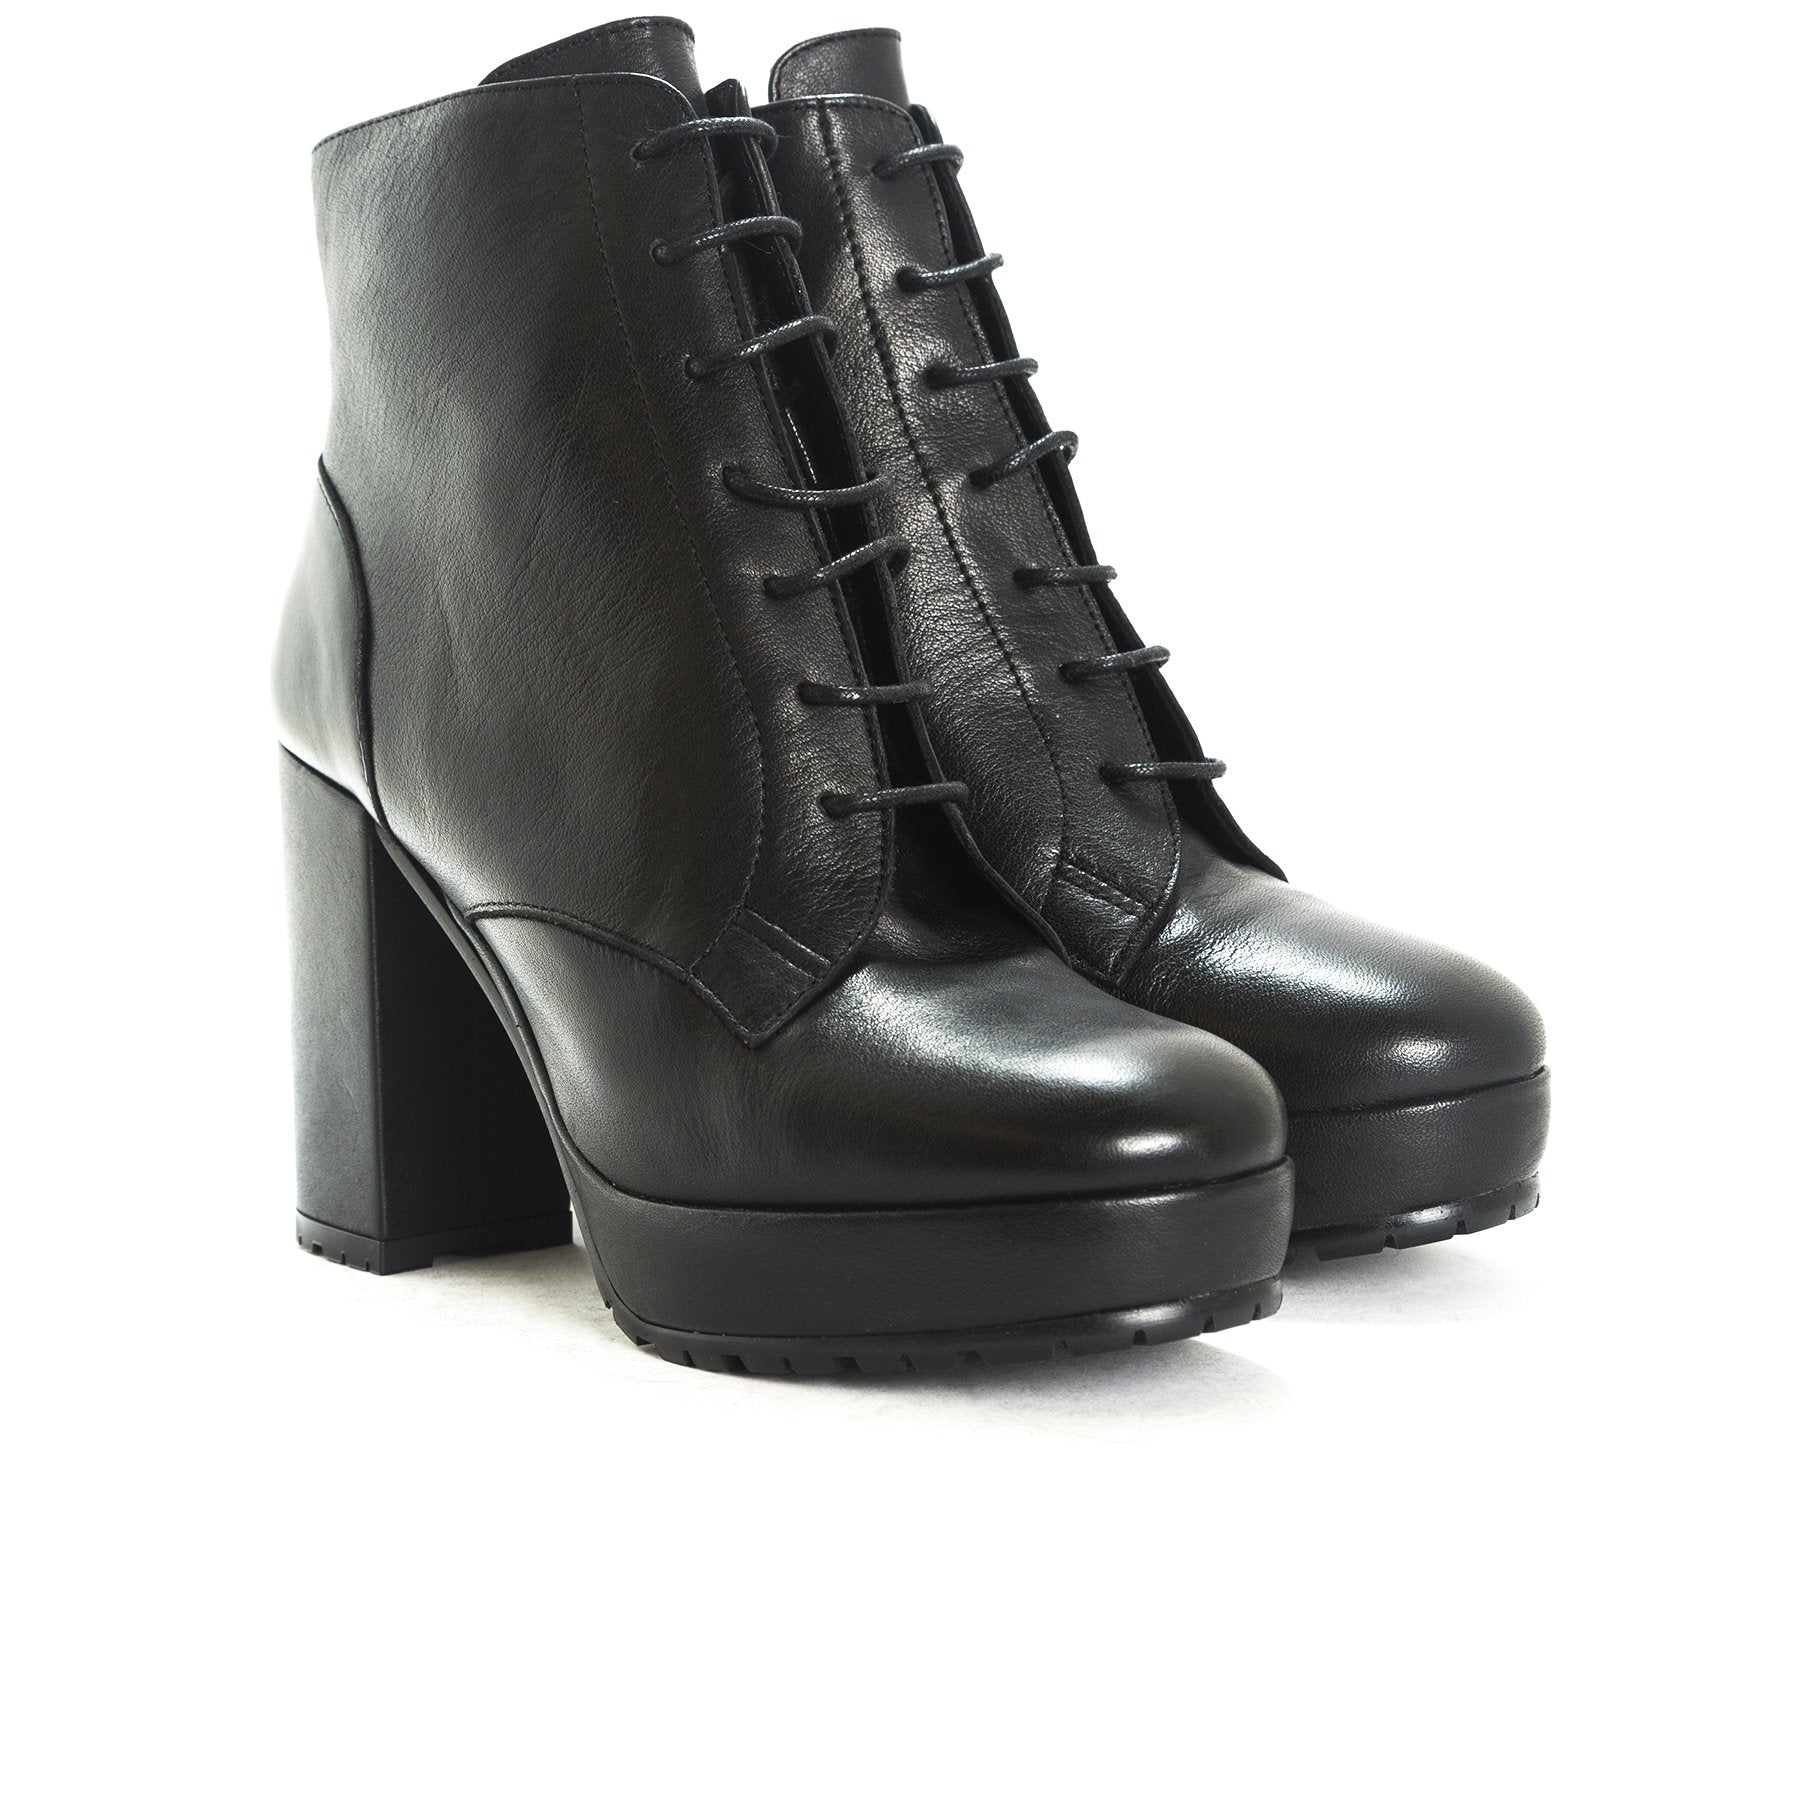 Fergy Black Leather Boots